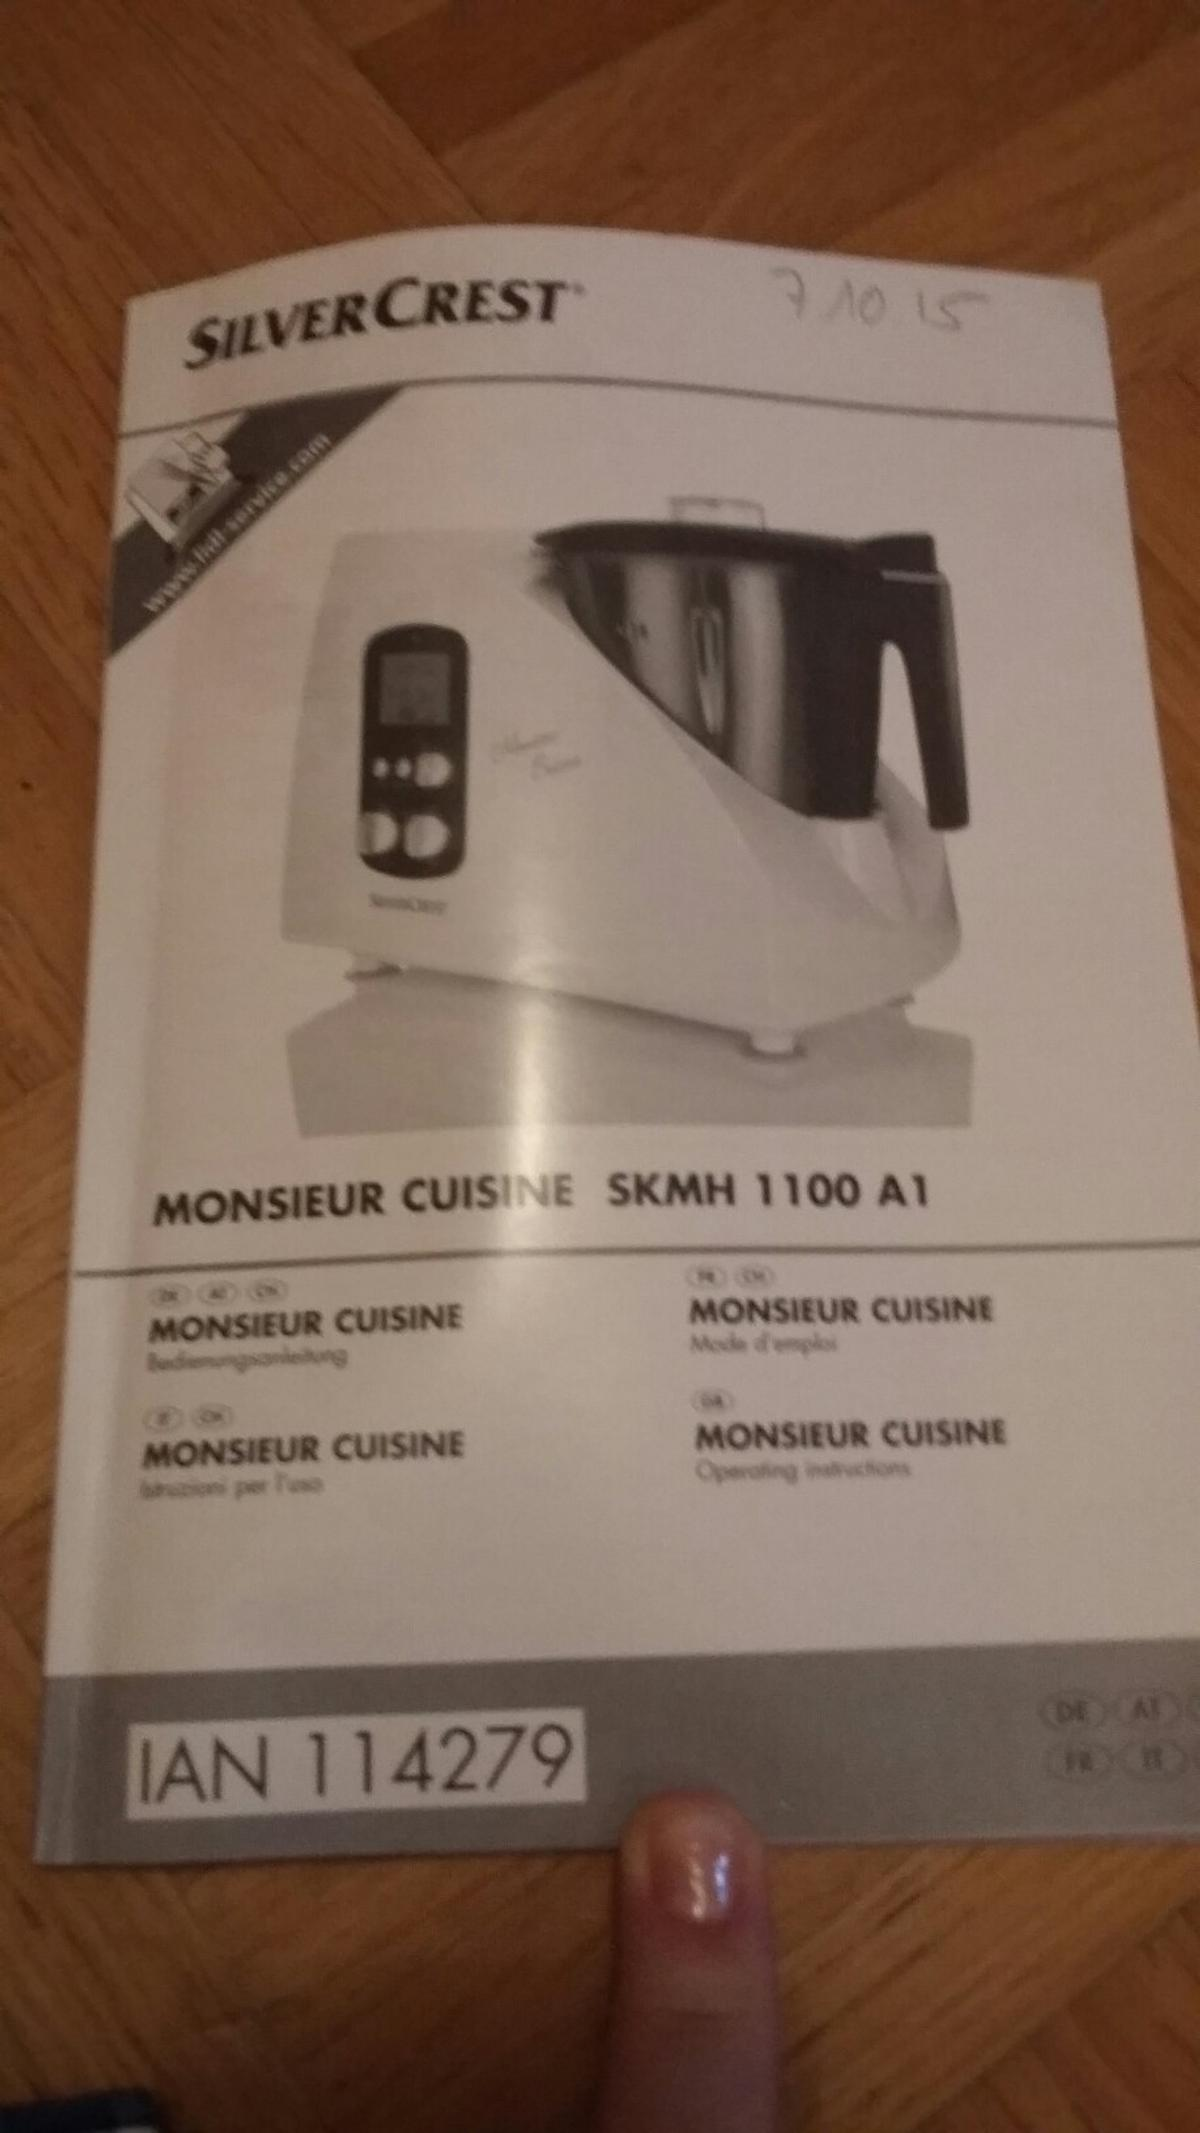 Monsieur Cuisine 2015 Lidl Thermomix In 76137 Karlsruhe For